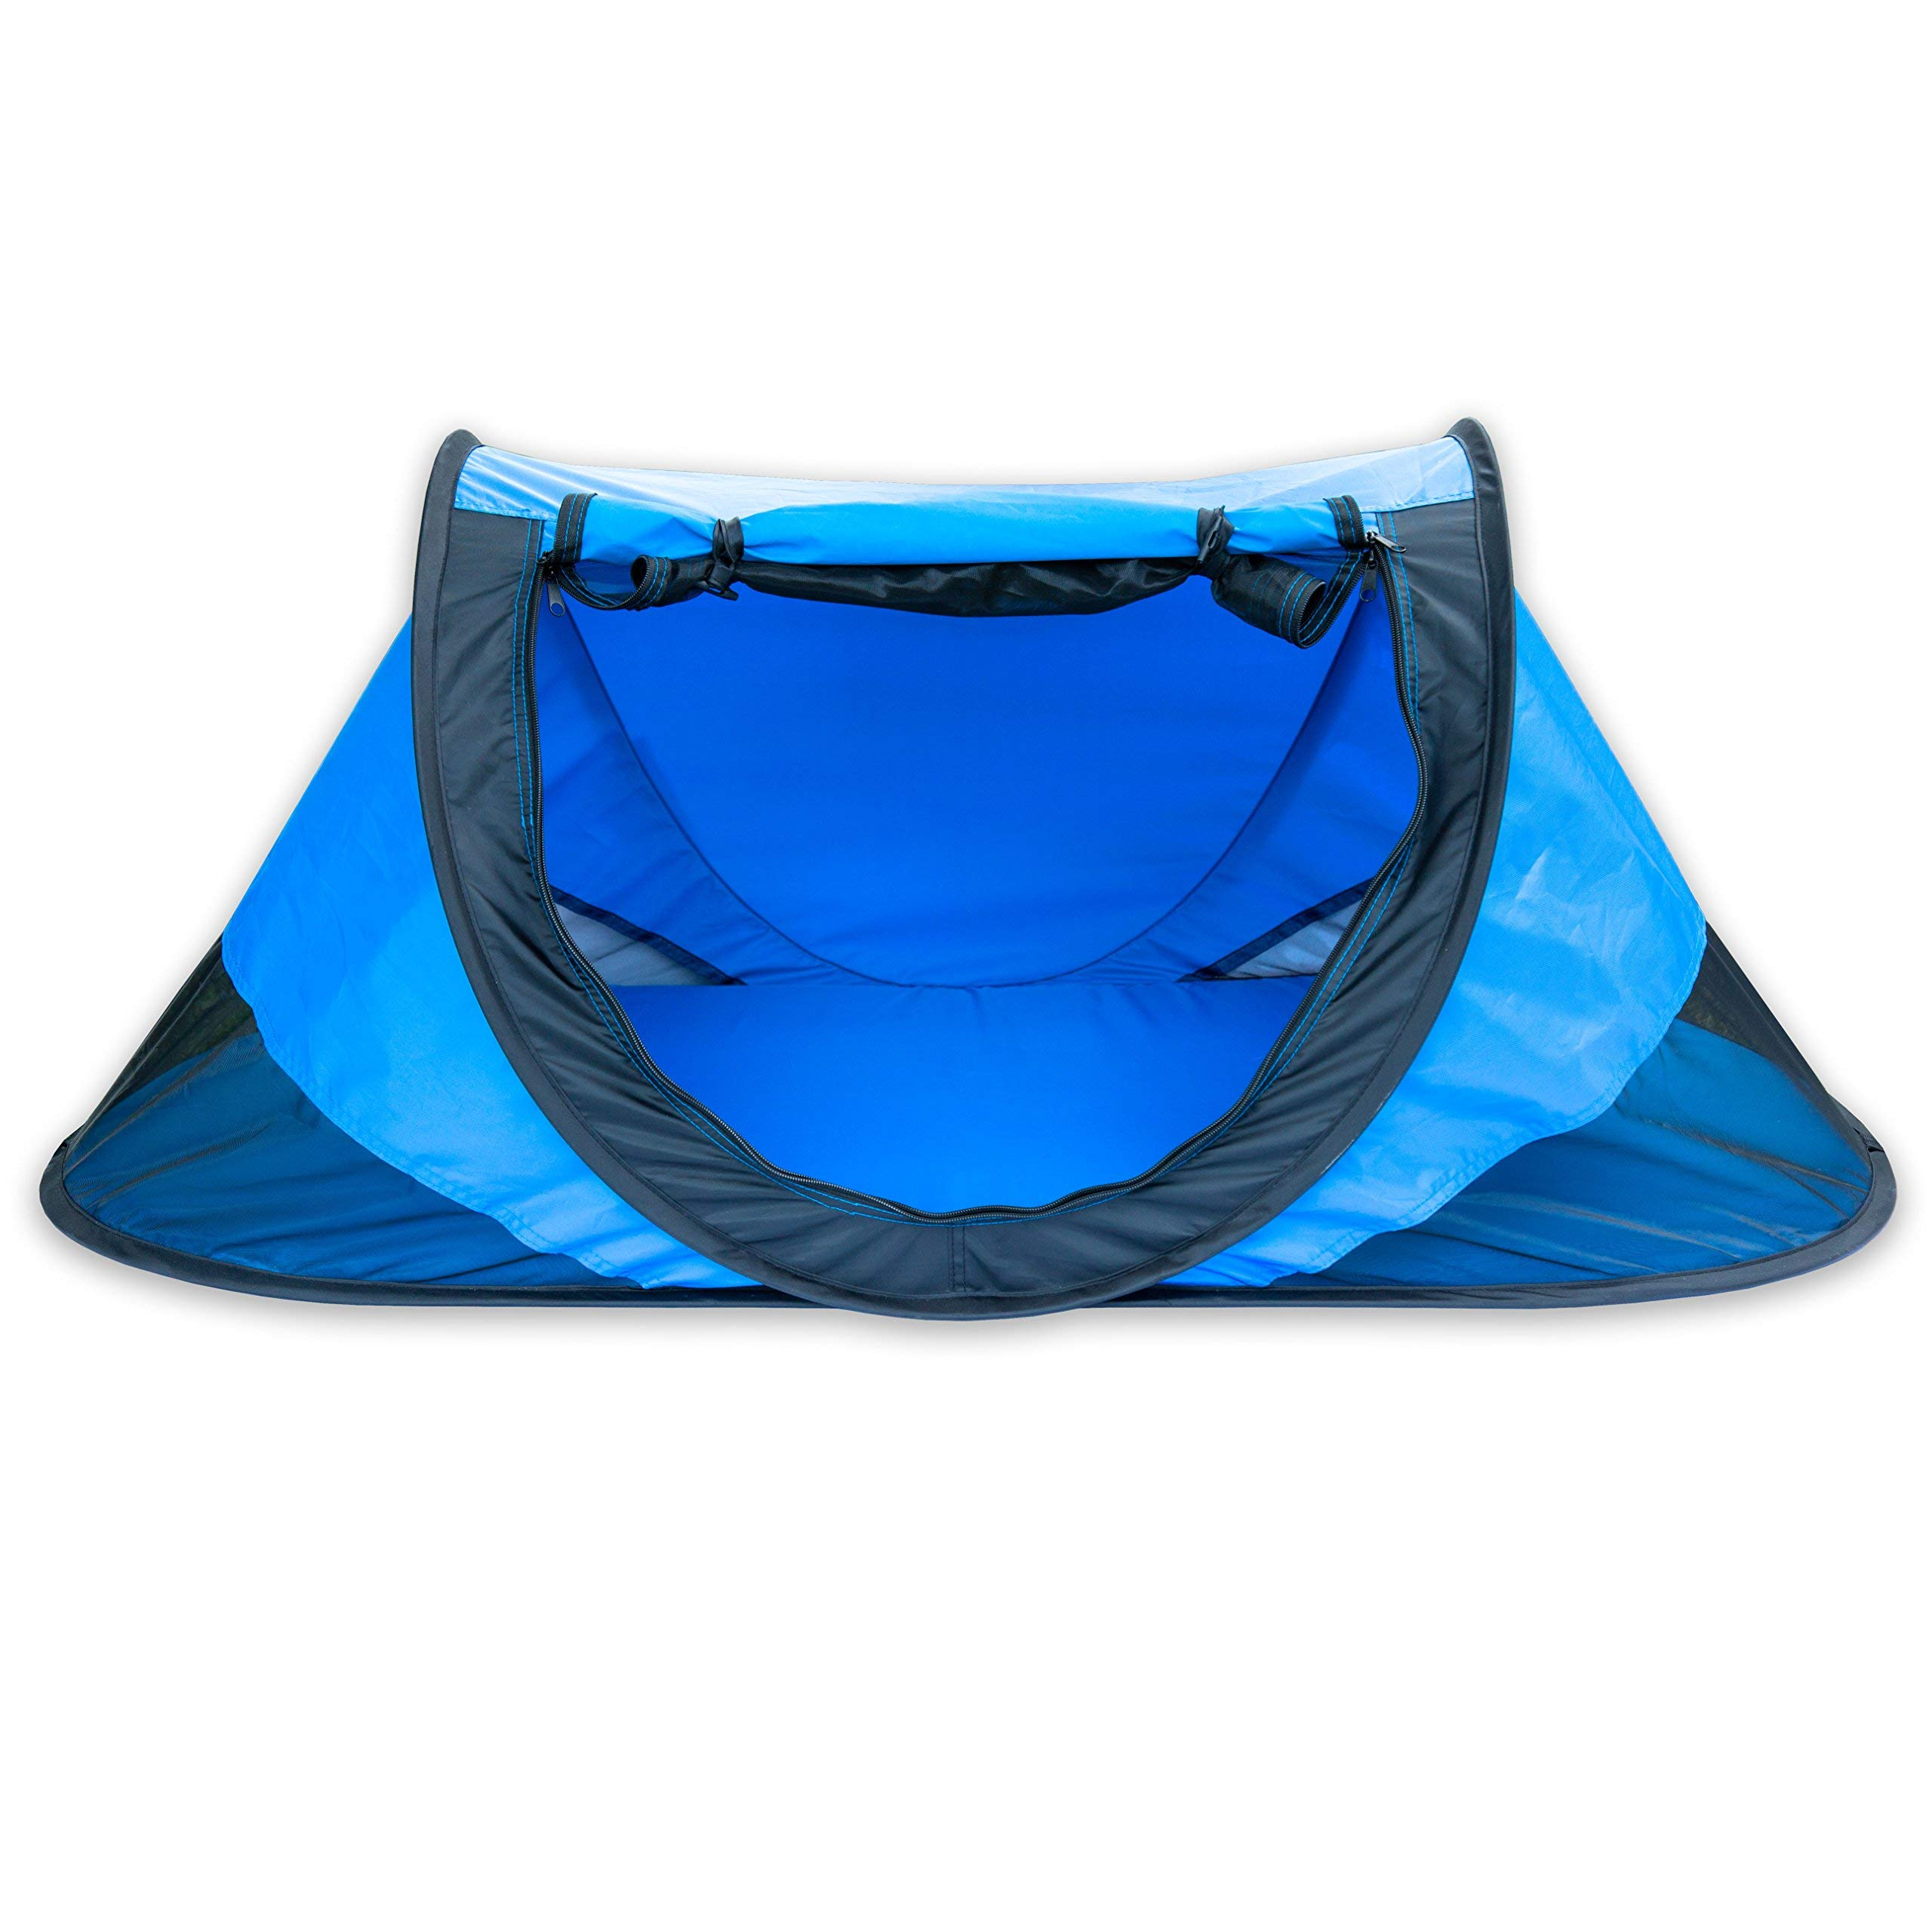 Blue Baby Nook Travel Beach Bed Tent